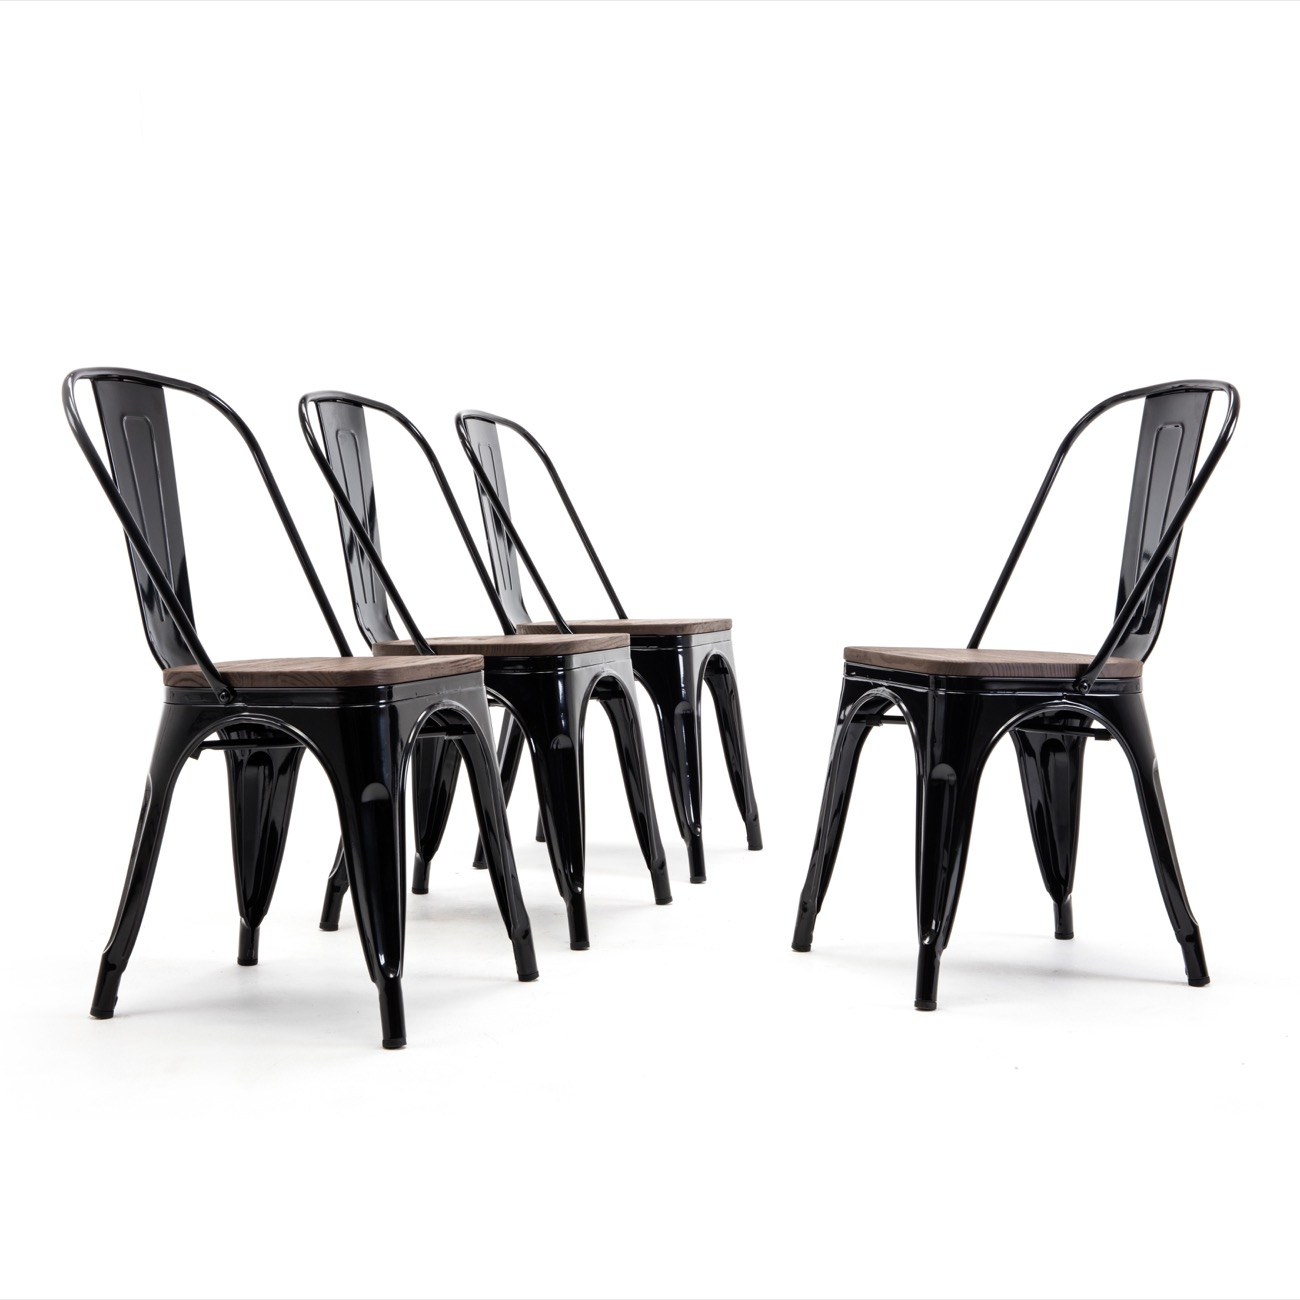 Set of 4 Bistro Metal Chairs with Wooden Seat with Backrest